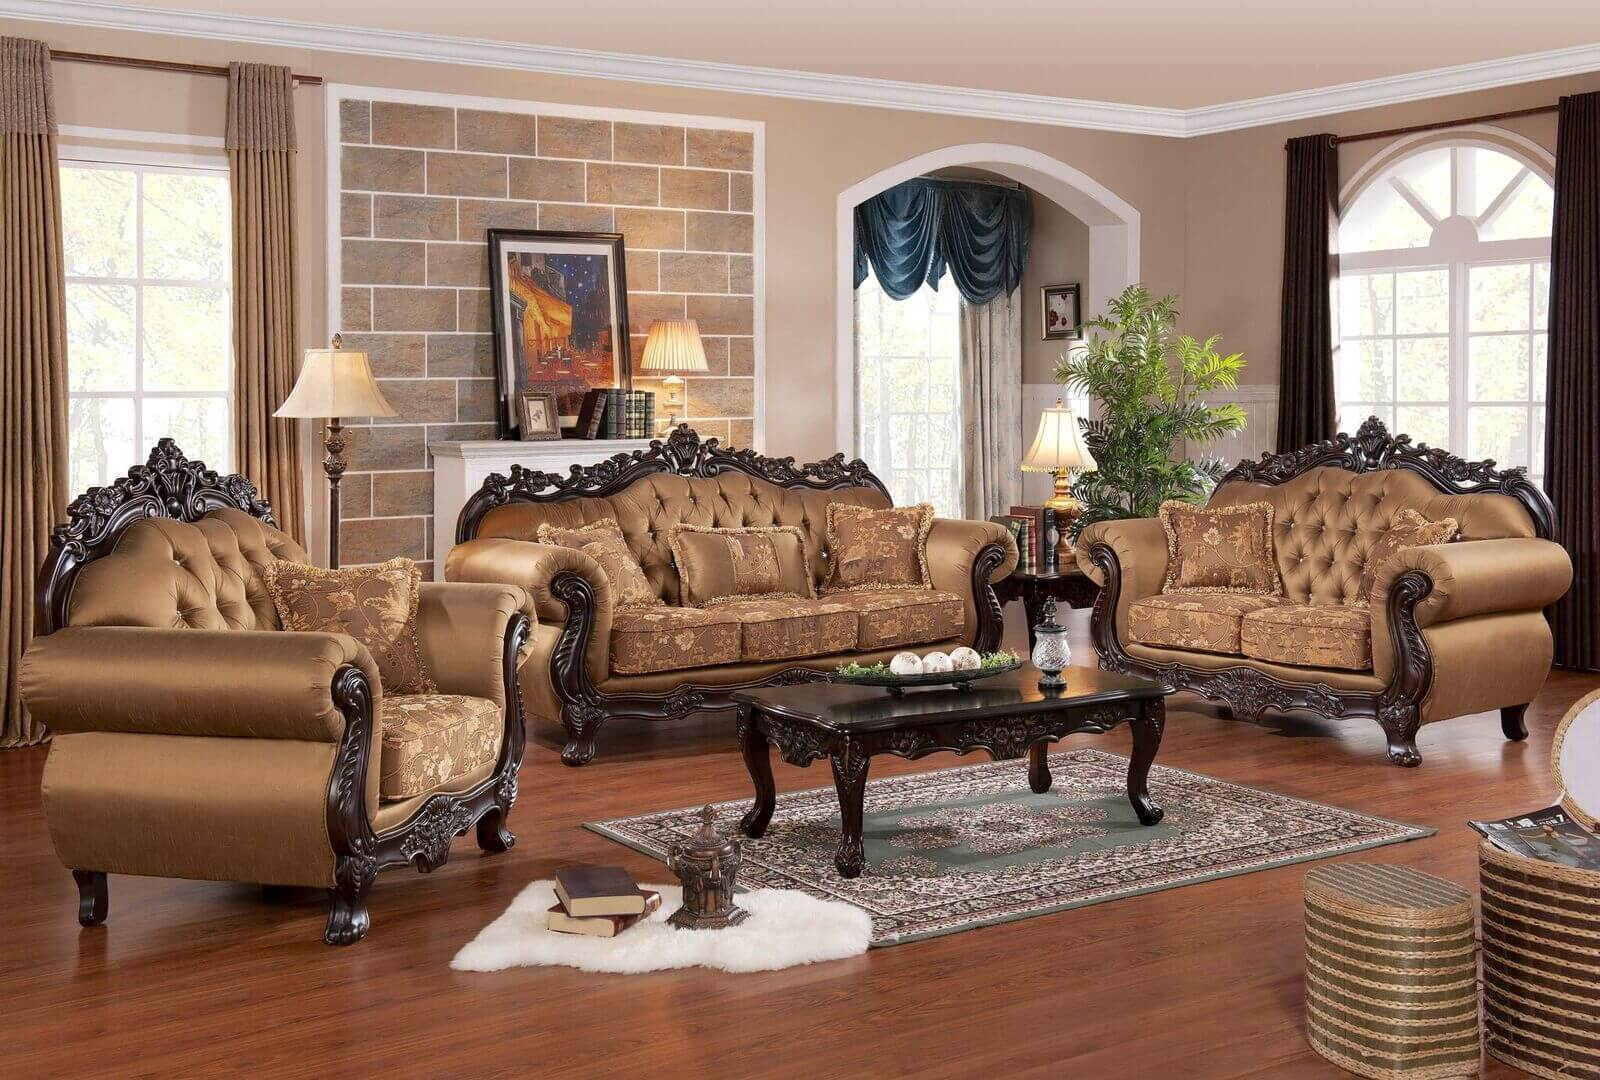 Sharon 3 Pc Living Room Set Antique Recreations intended for 11 Clever Ways How to Build Living Room Set For Sale